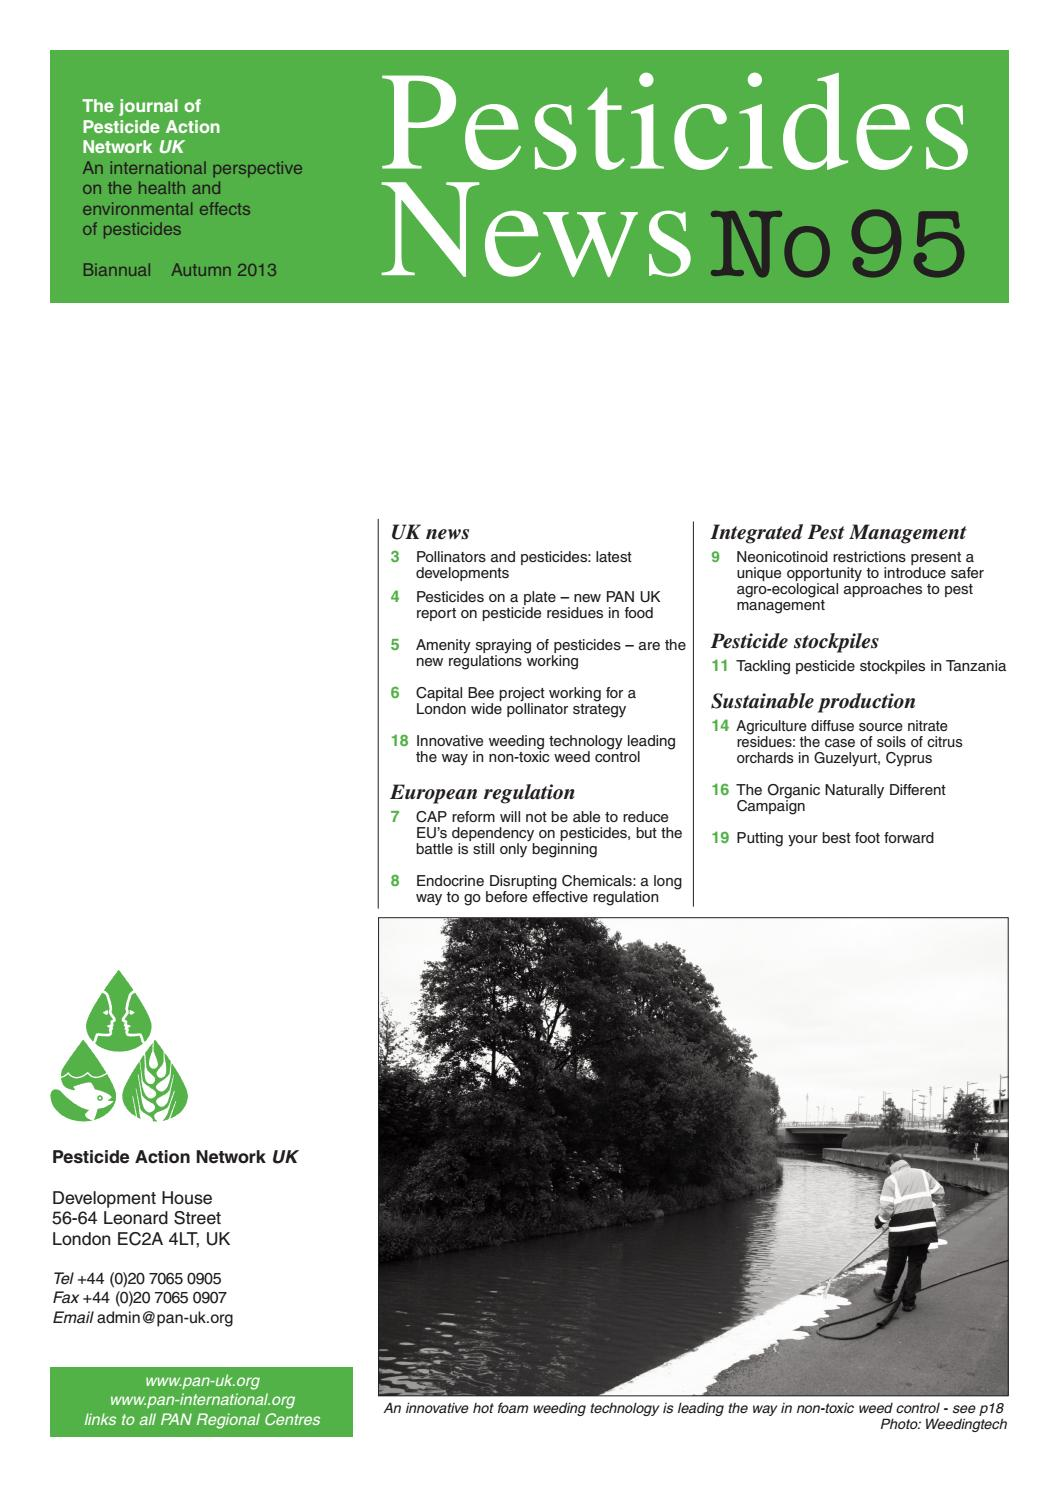 PAN UK - Pesticide News - Issue 95 by PAN UK - issuu